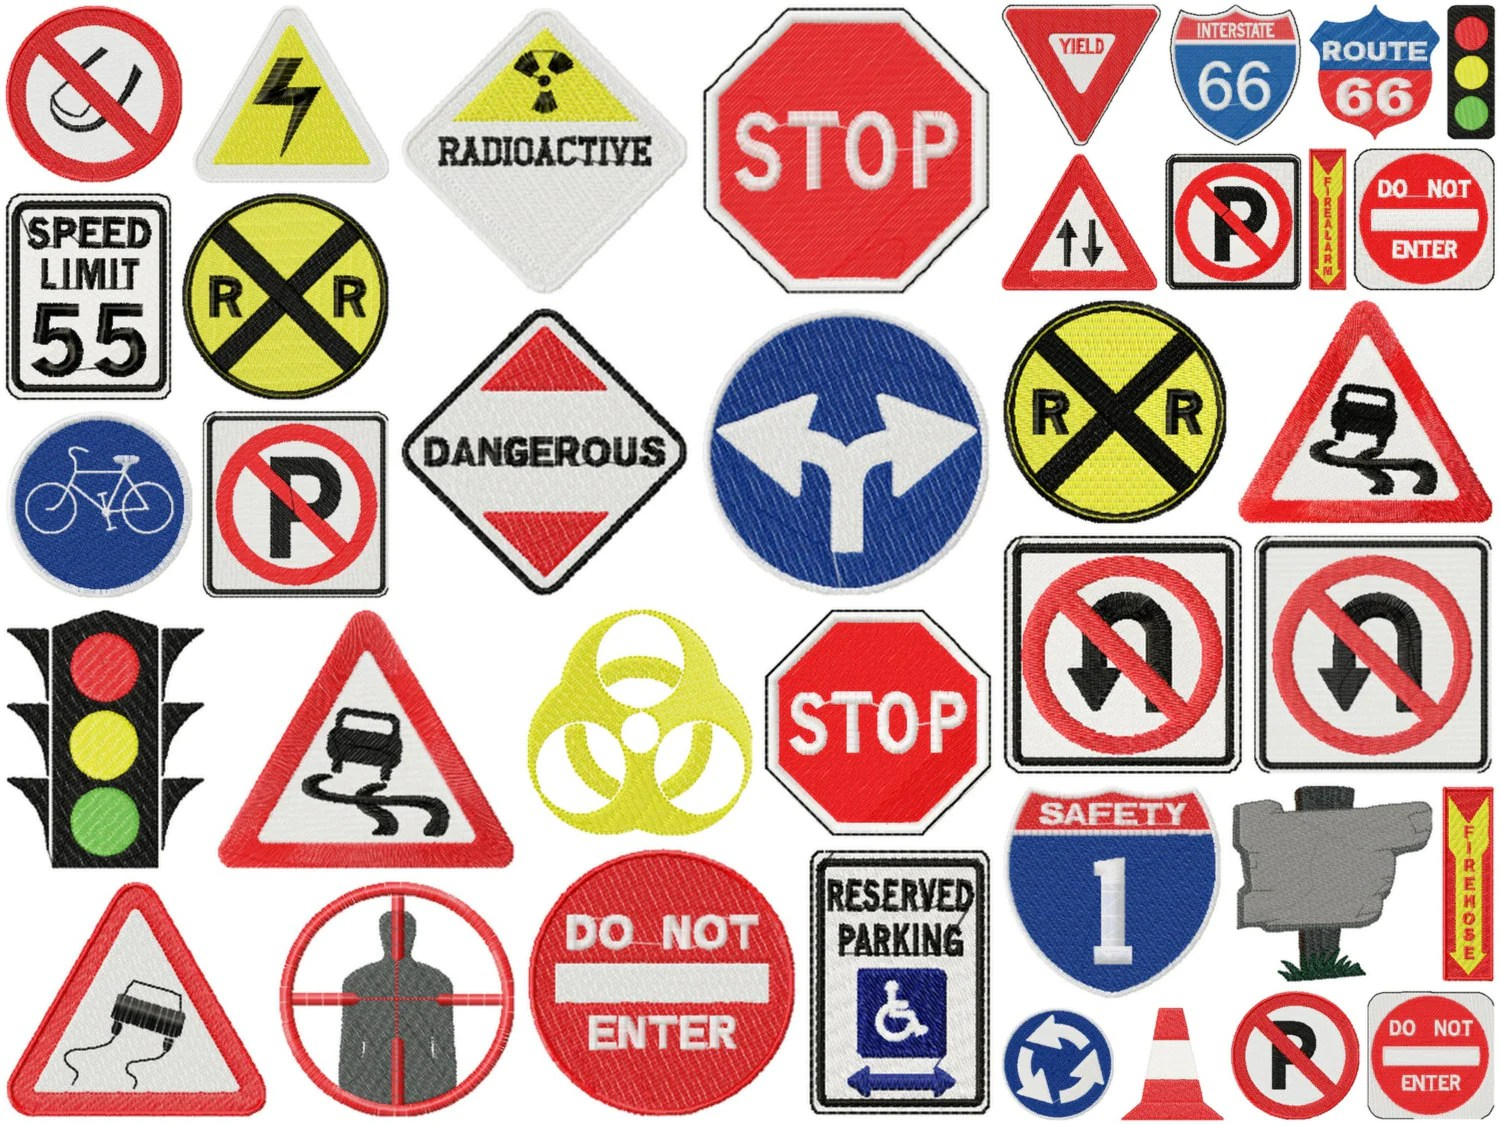 Road Sign Designs For Embroidery Machine Instant Download